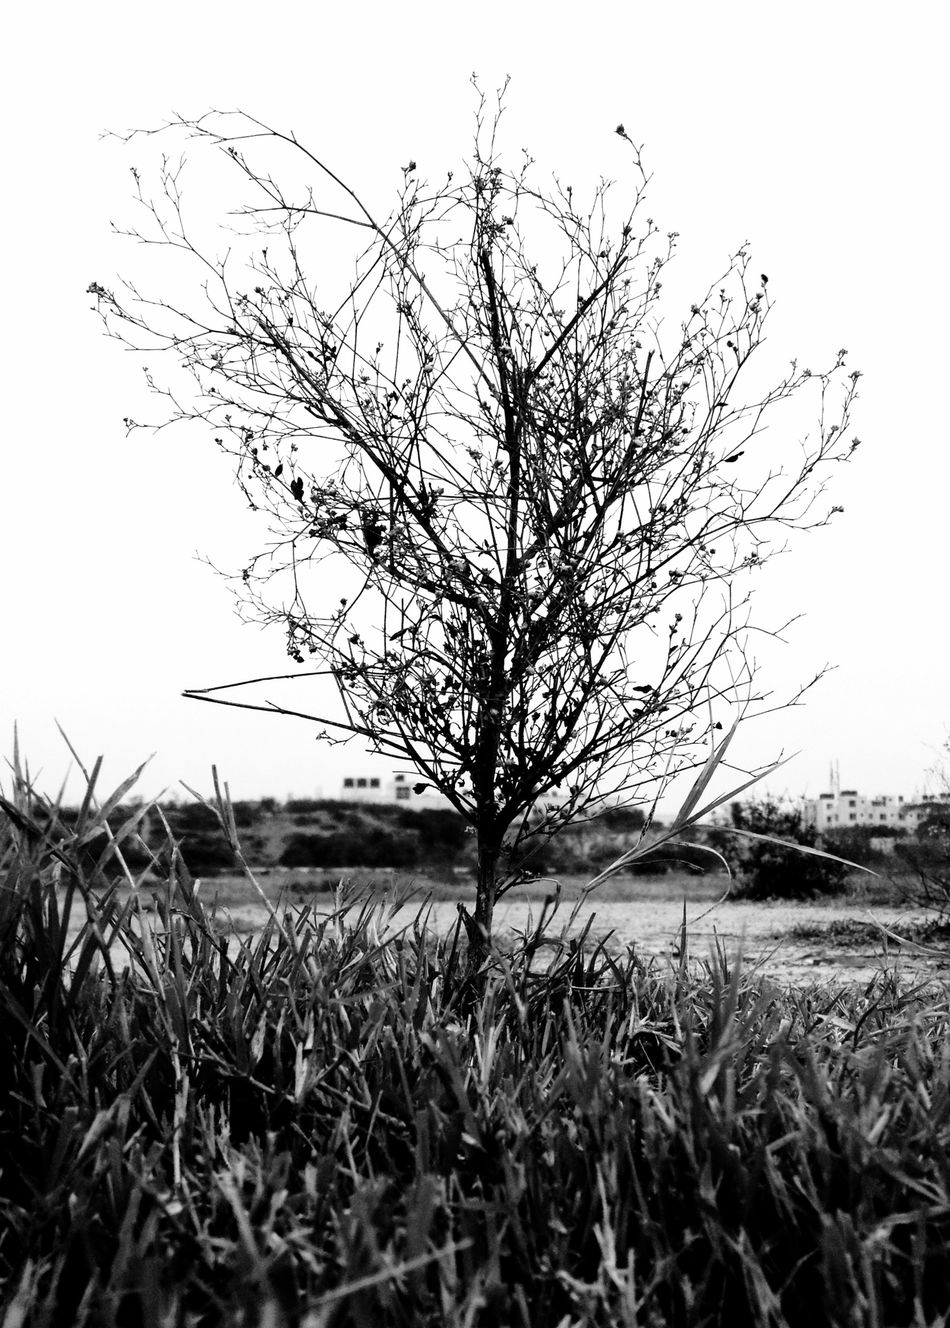 Plant Grass Blackandwhite Photography Black And White Photography Blackandwhitephotography IPhoneography Iphoneonly IPhone Iphonephotography Iphonesia IPhone Photography IPhone 4S IPhone4s Mobilephotography Mobile Photography Mobilephoto Bangalore India